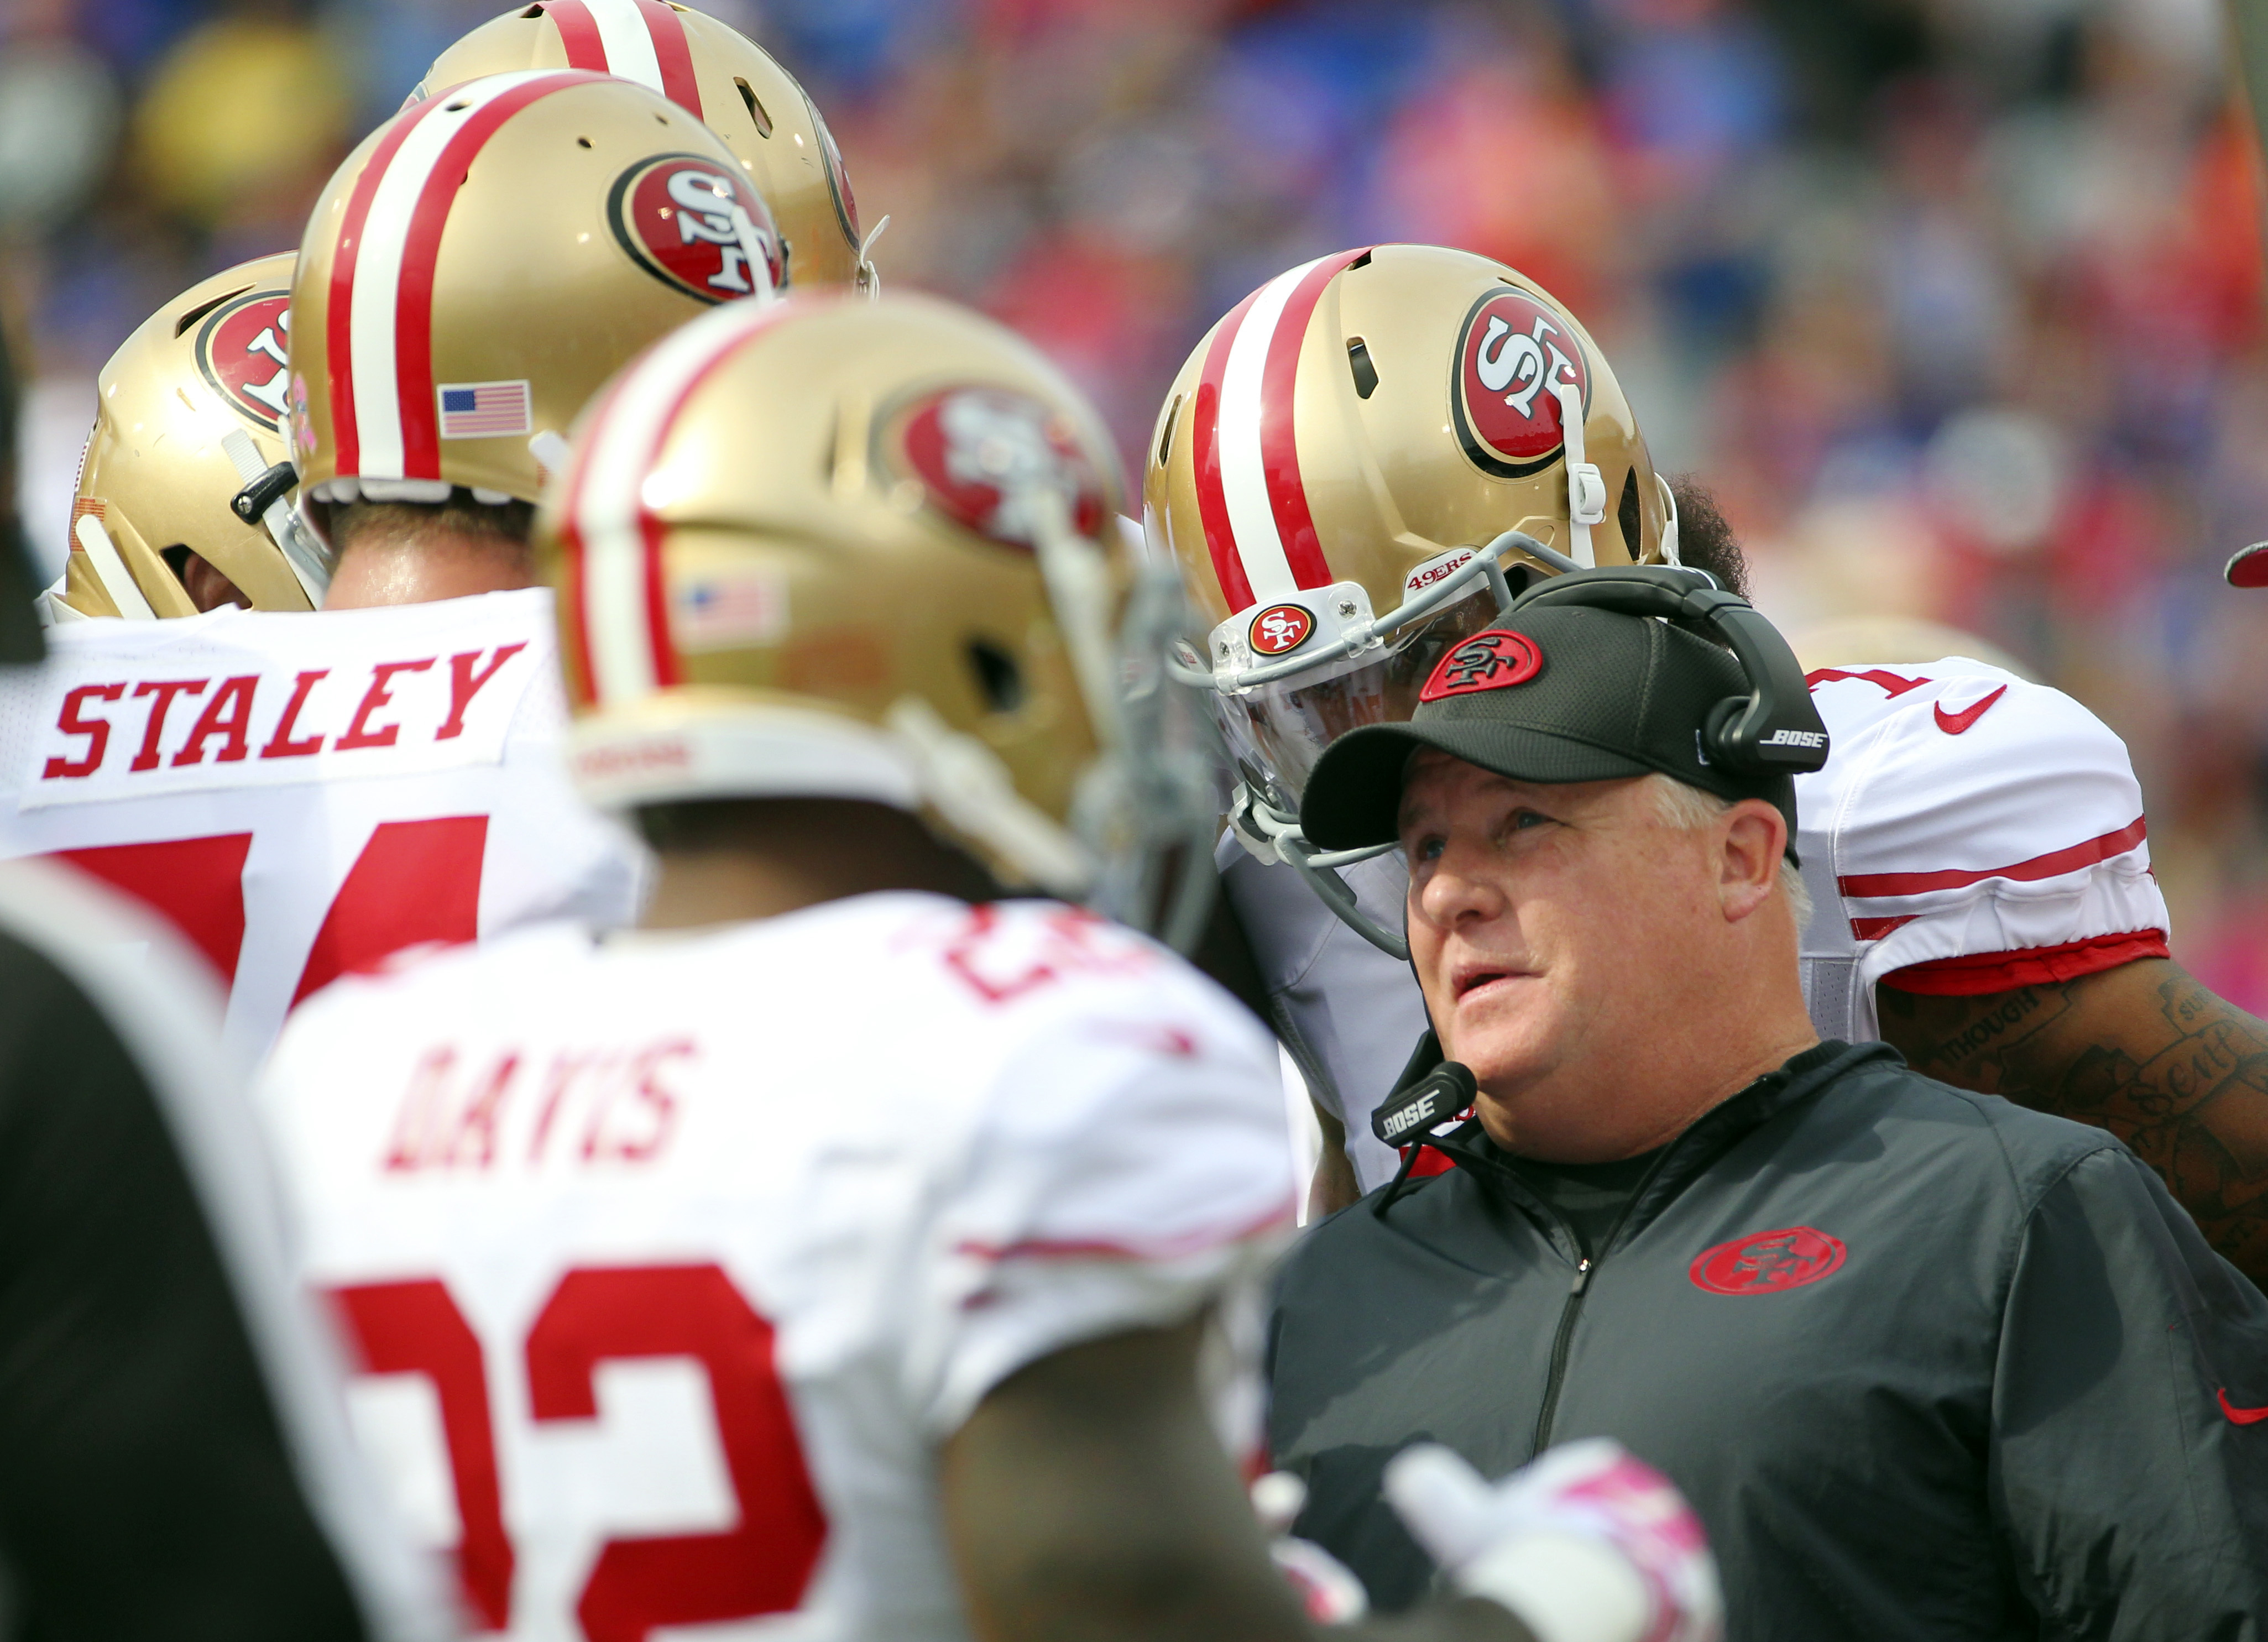 FILE - In a Sunday, Oct. 16, 2016 filel photo, San Francisco 49ers head coach Chip Kelly talks to his players during the first half of an NFL football game against the Buffalo Bills, in Orchard Park, N.Y. San Francisco snapped a franchise-record 13-game l